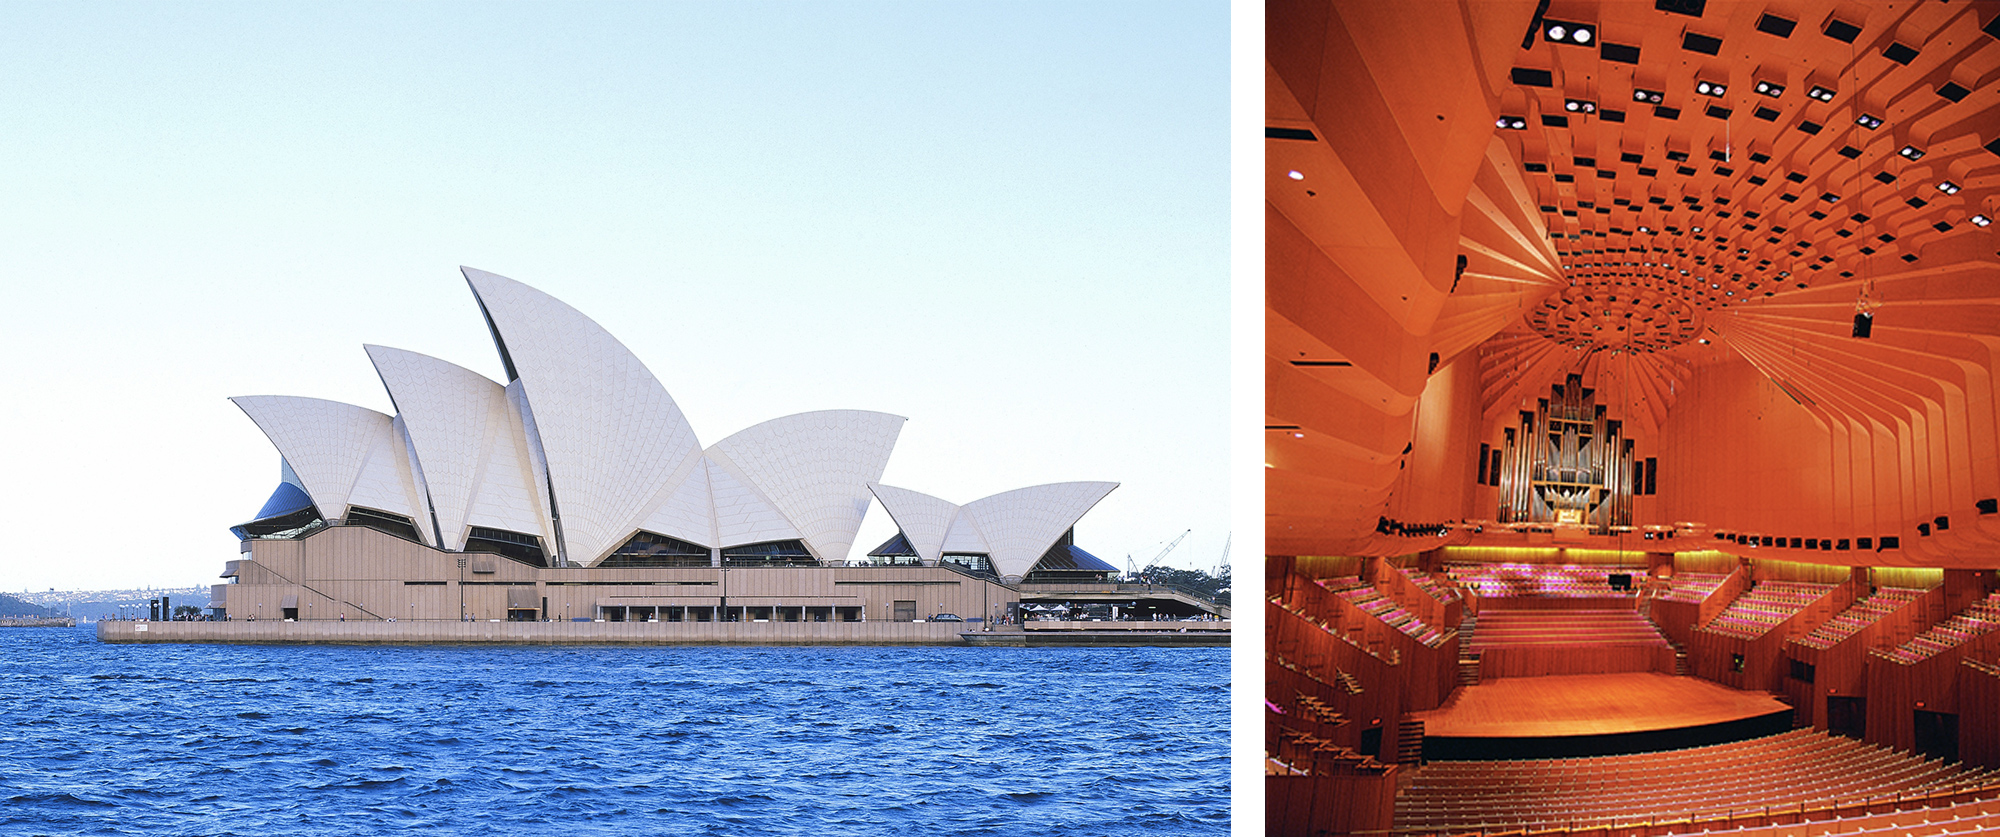 Photography: courtesy of Sydney Opera House